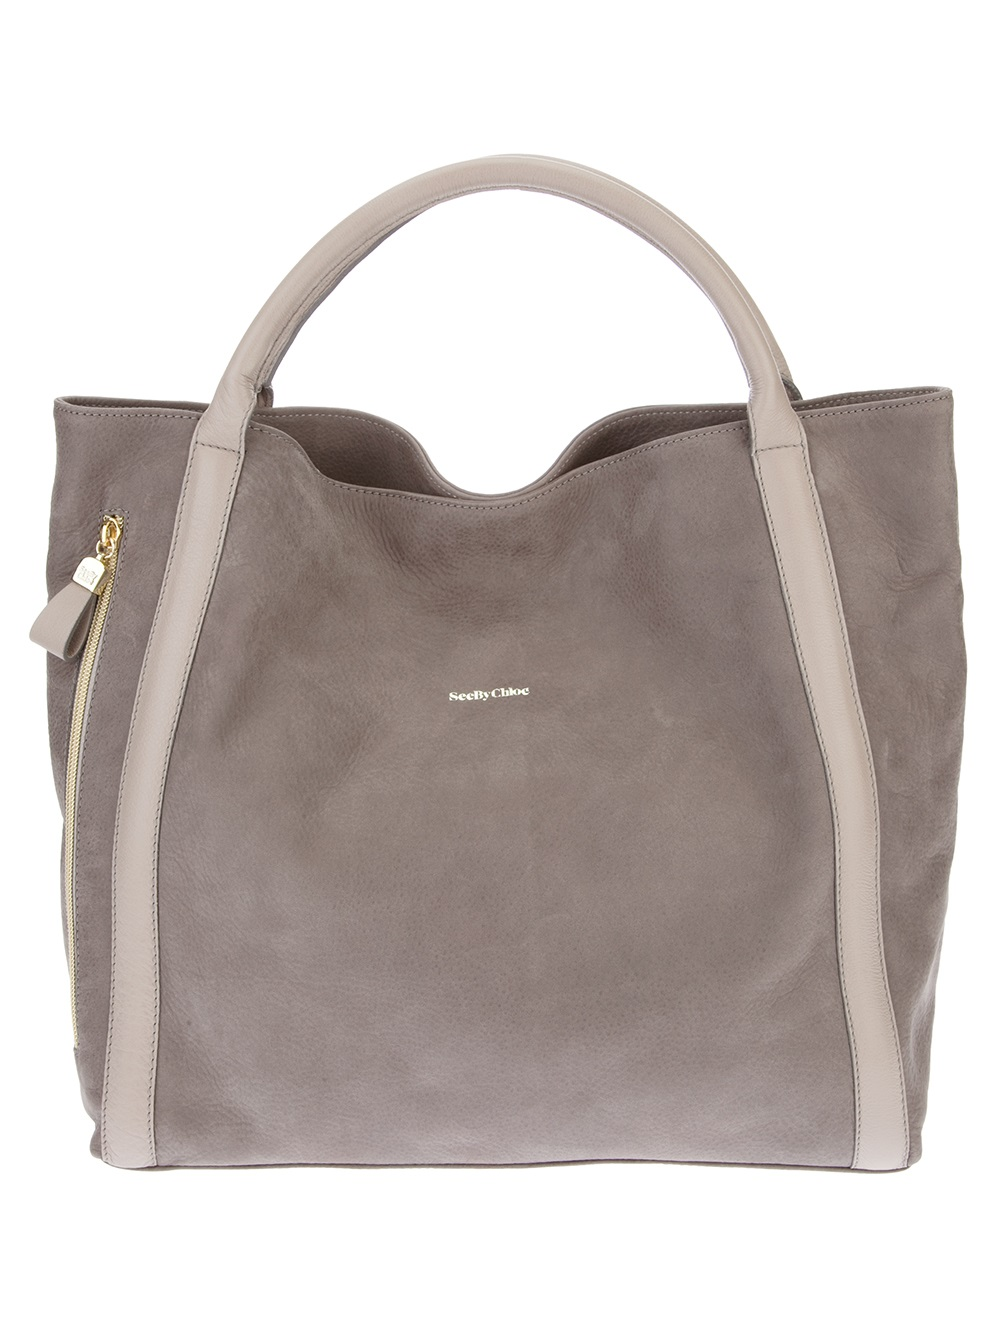 See by chlo¨¦ Tote Bag in Gray (grey)   Lyst